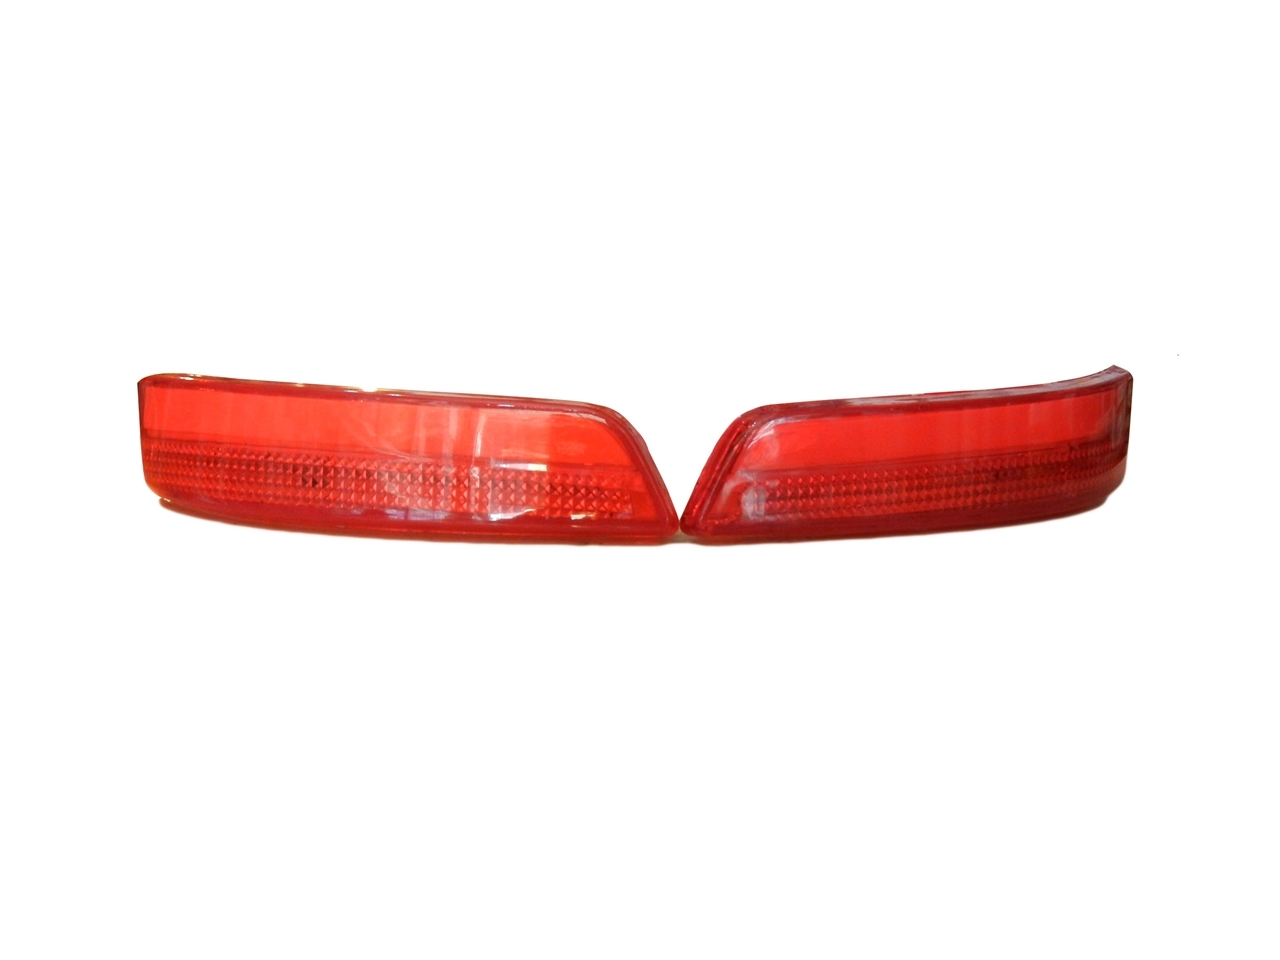 Rear Bumper Reflector NZE-170 (Design 2)